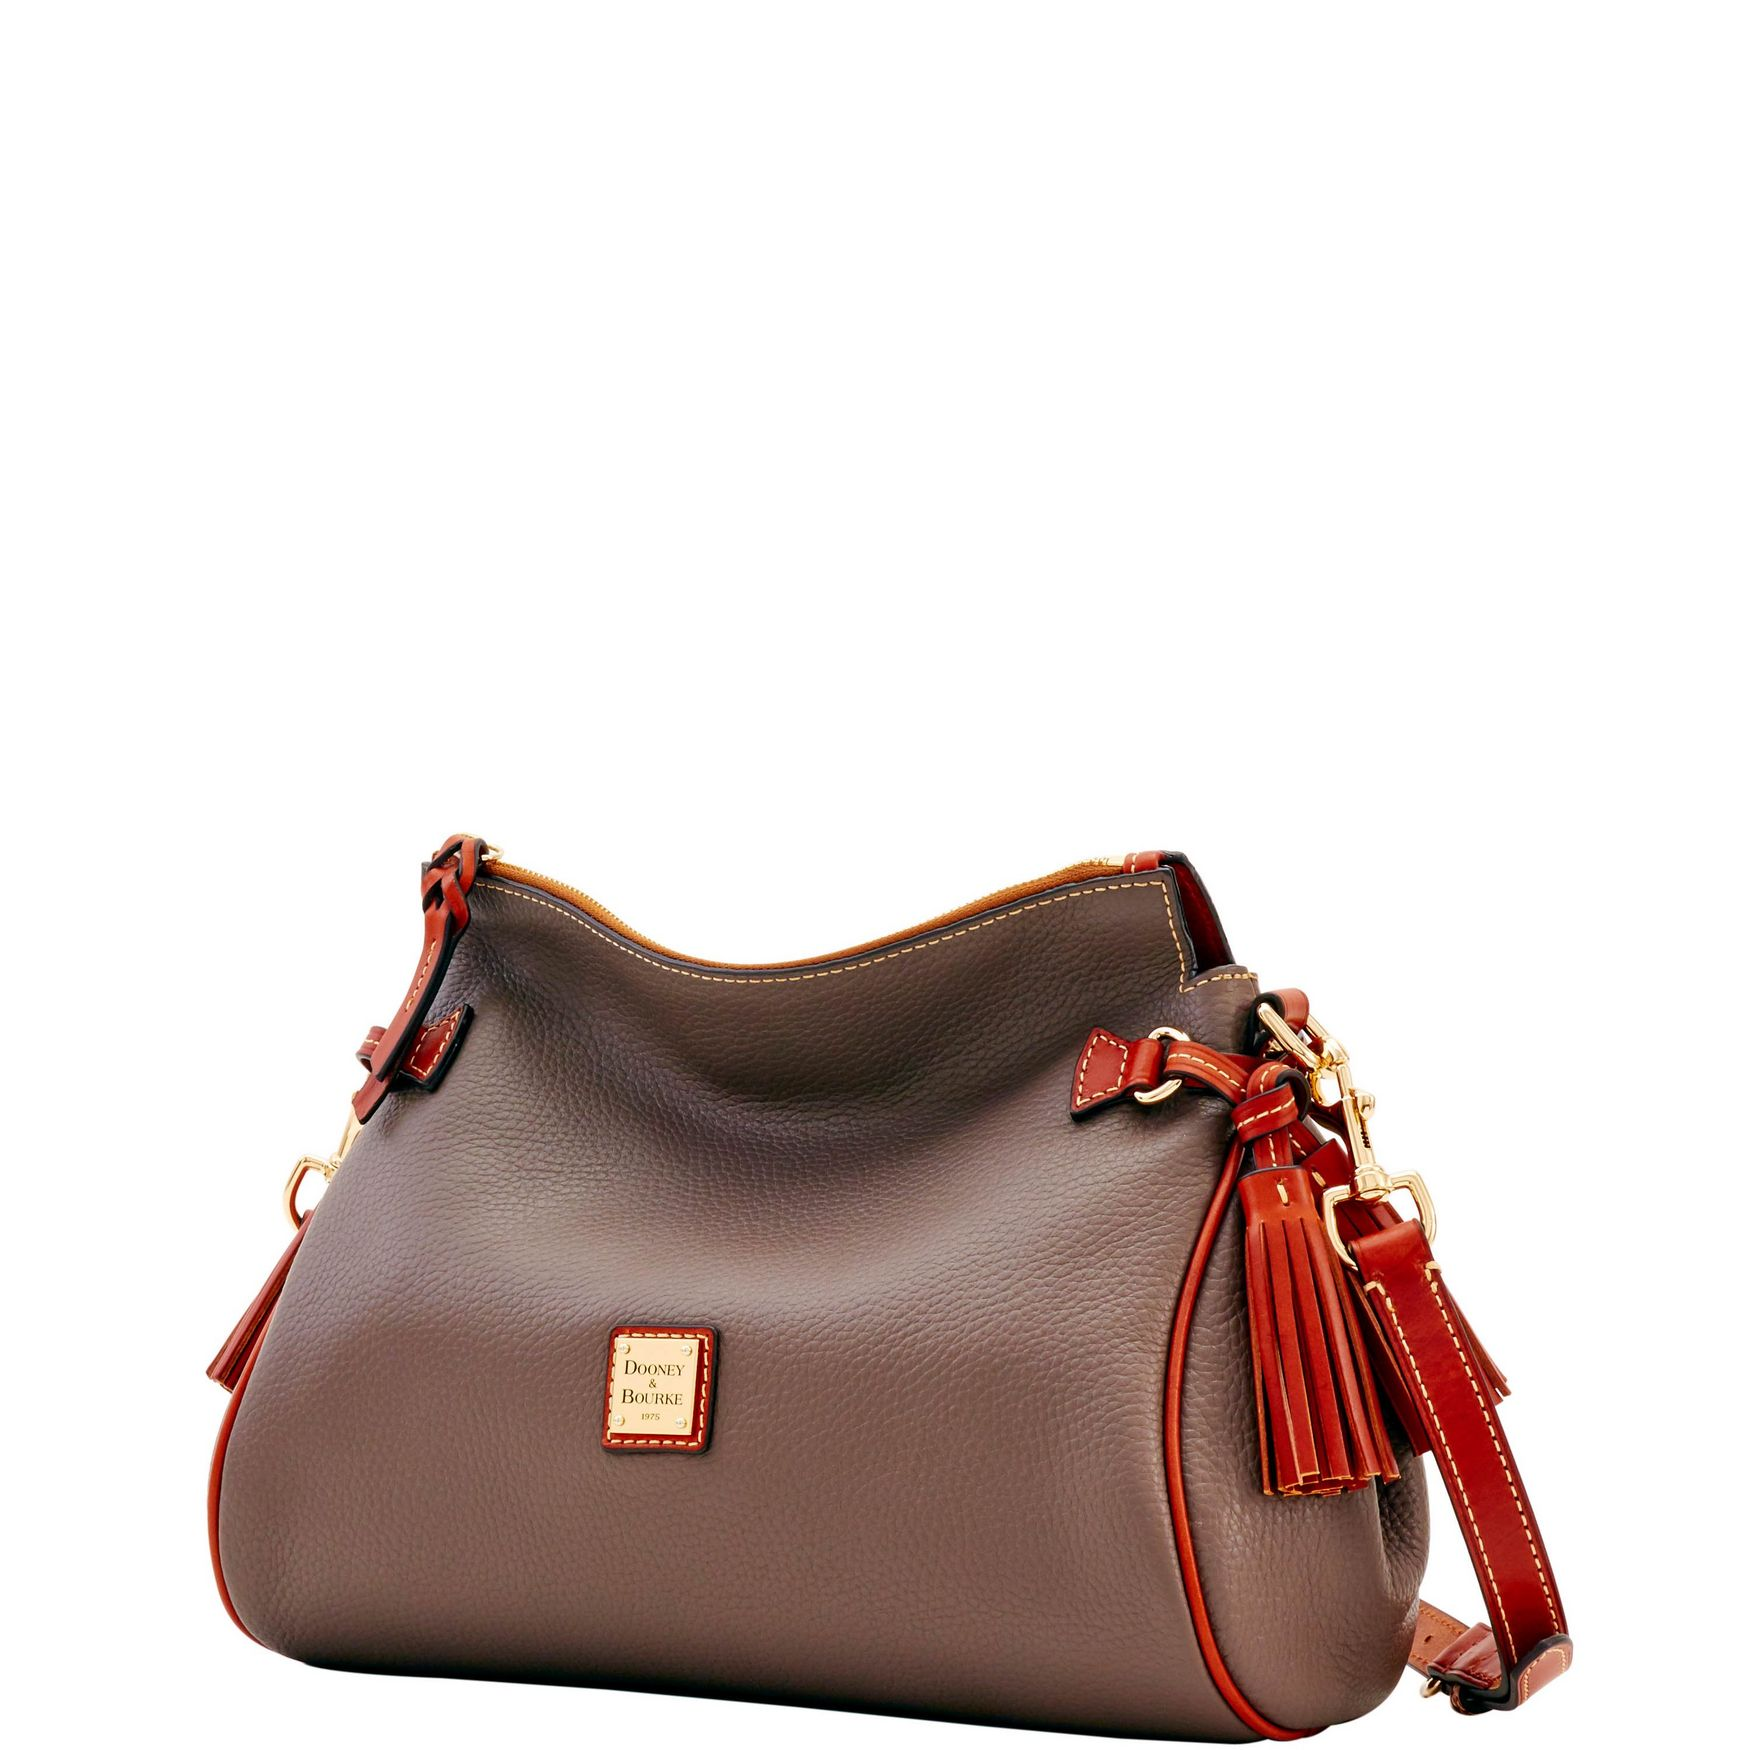 Dooney-amp-Bourke-Pebble-Grain-Medium-Zip-Crossbody-Shoulder-Bag thumbnail 20